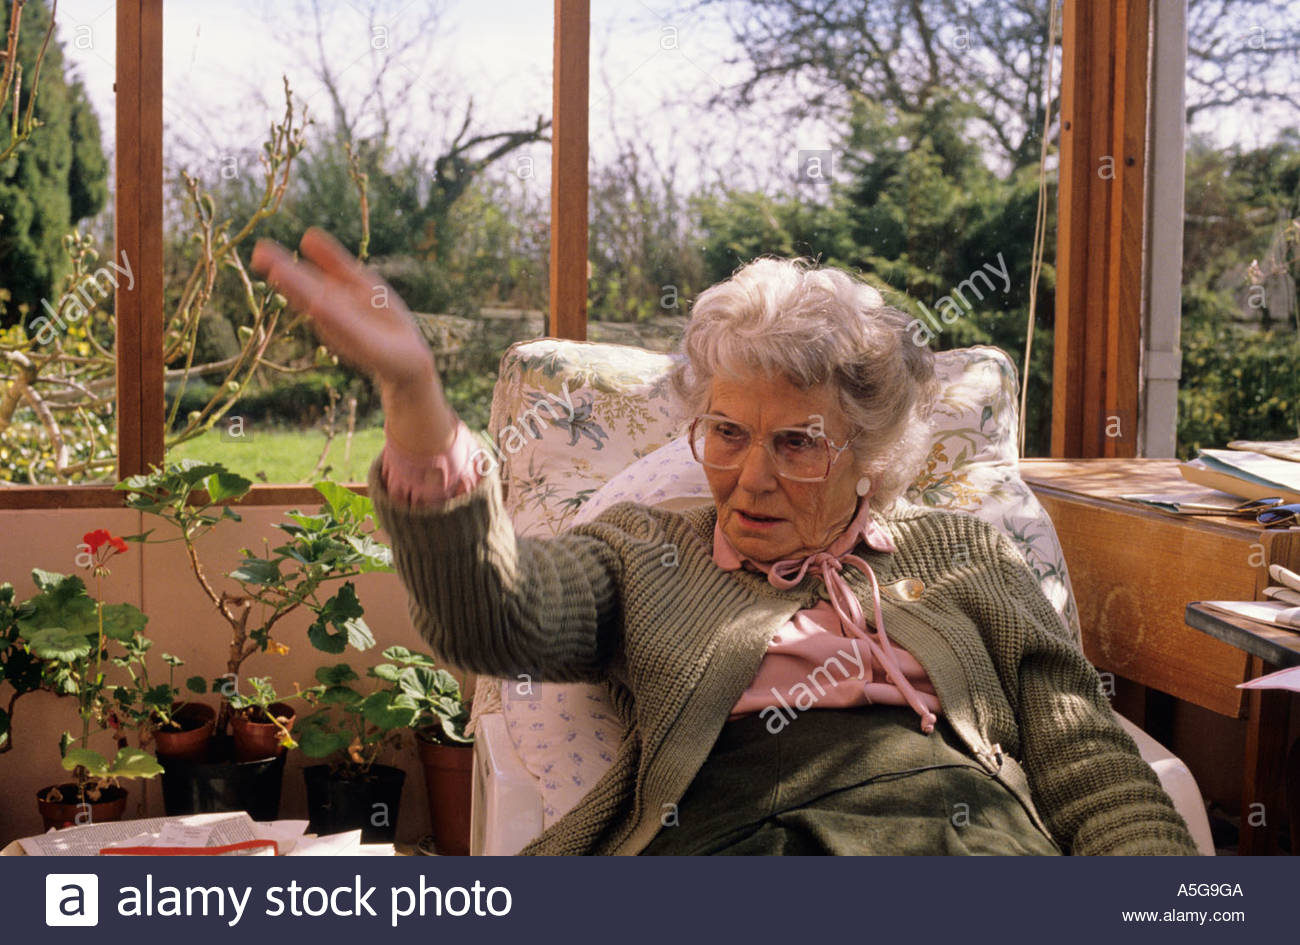 Decency campaigner Mrs Mary Whitehouse at home in Ardleigh, Colchester, England - Stock Image